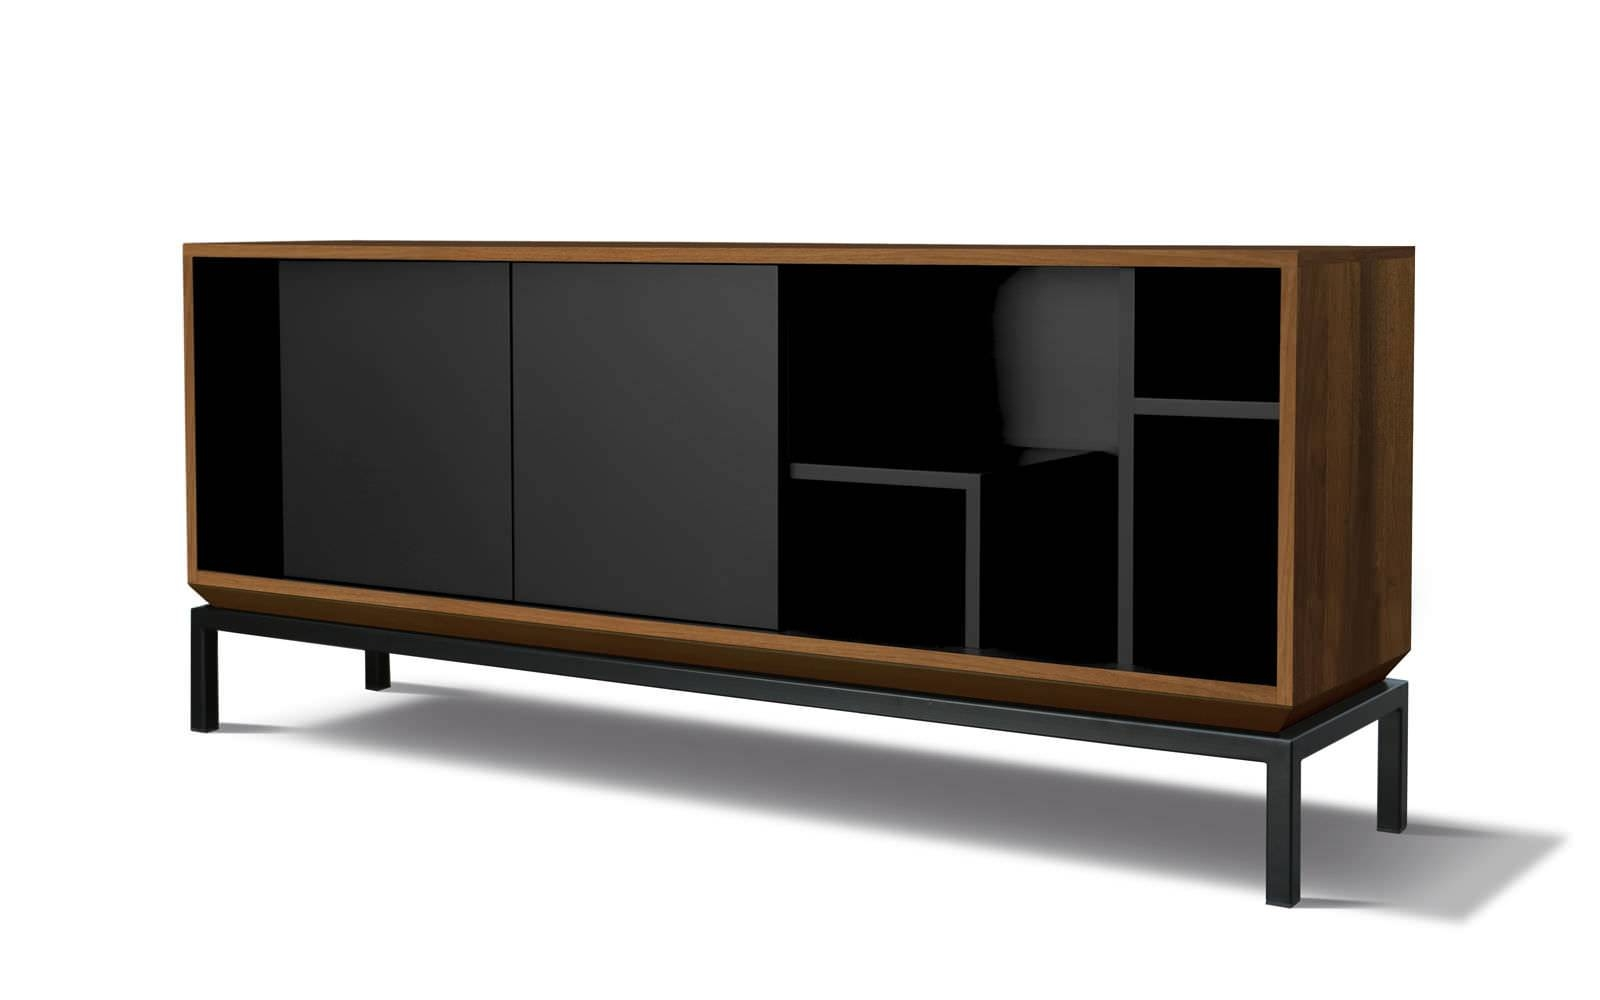 Contemporary Sideboard / Oak / Walnut / Lacquered Mdf - My City within Walnut and Black Sideboards (Image 8 of 30)